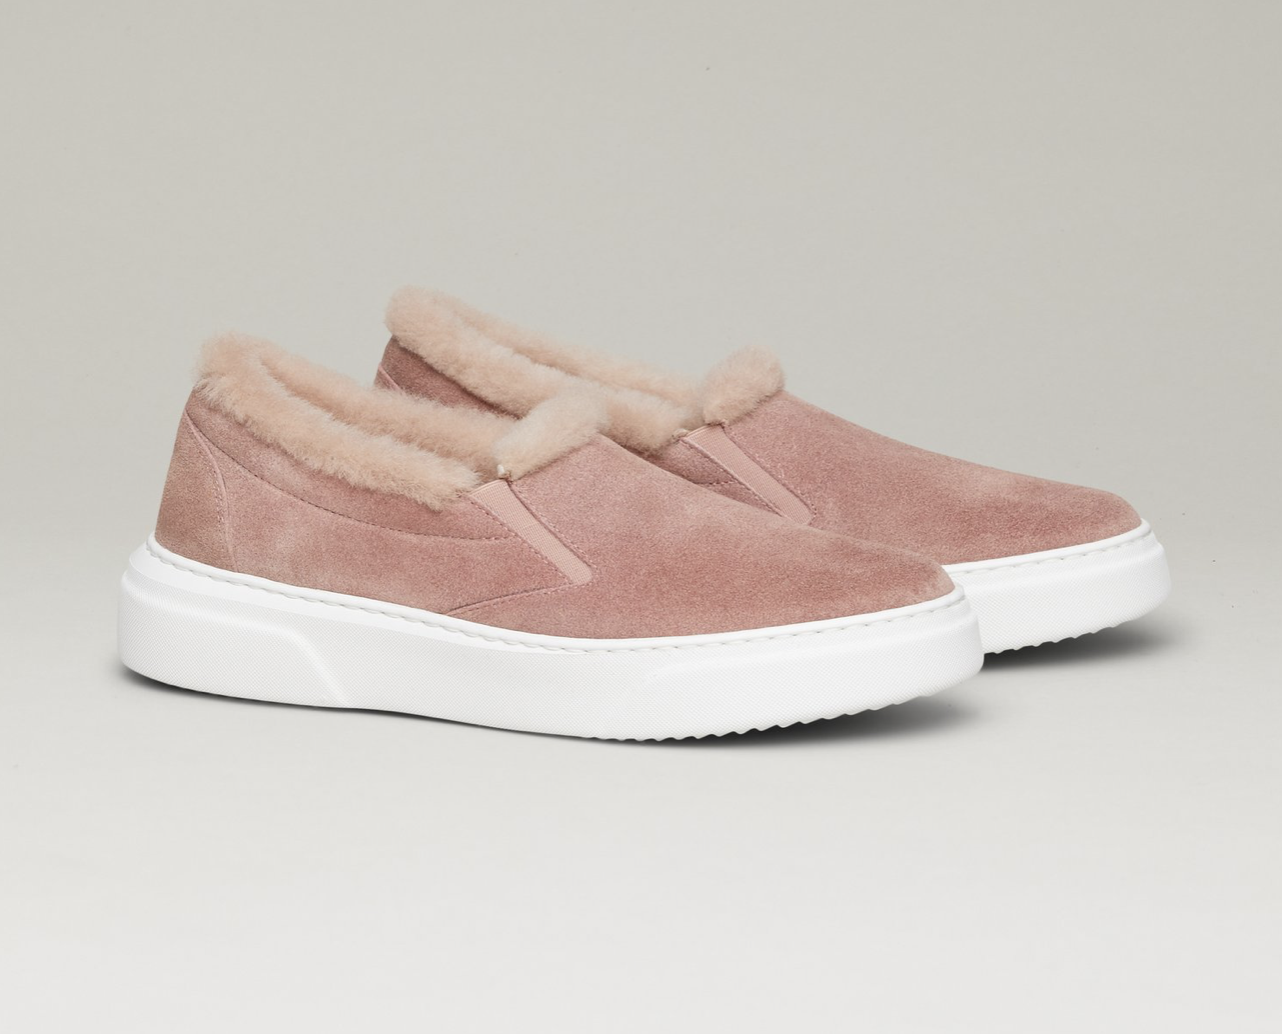 cyber monday | deals | christmas gifts | holiday shopping | Mash Elle | pink sneakers